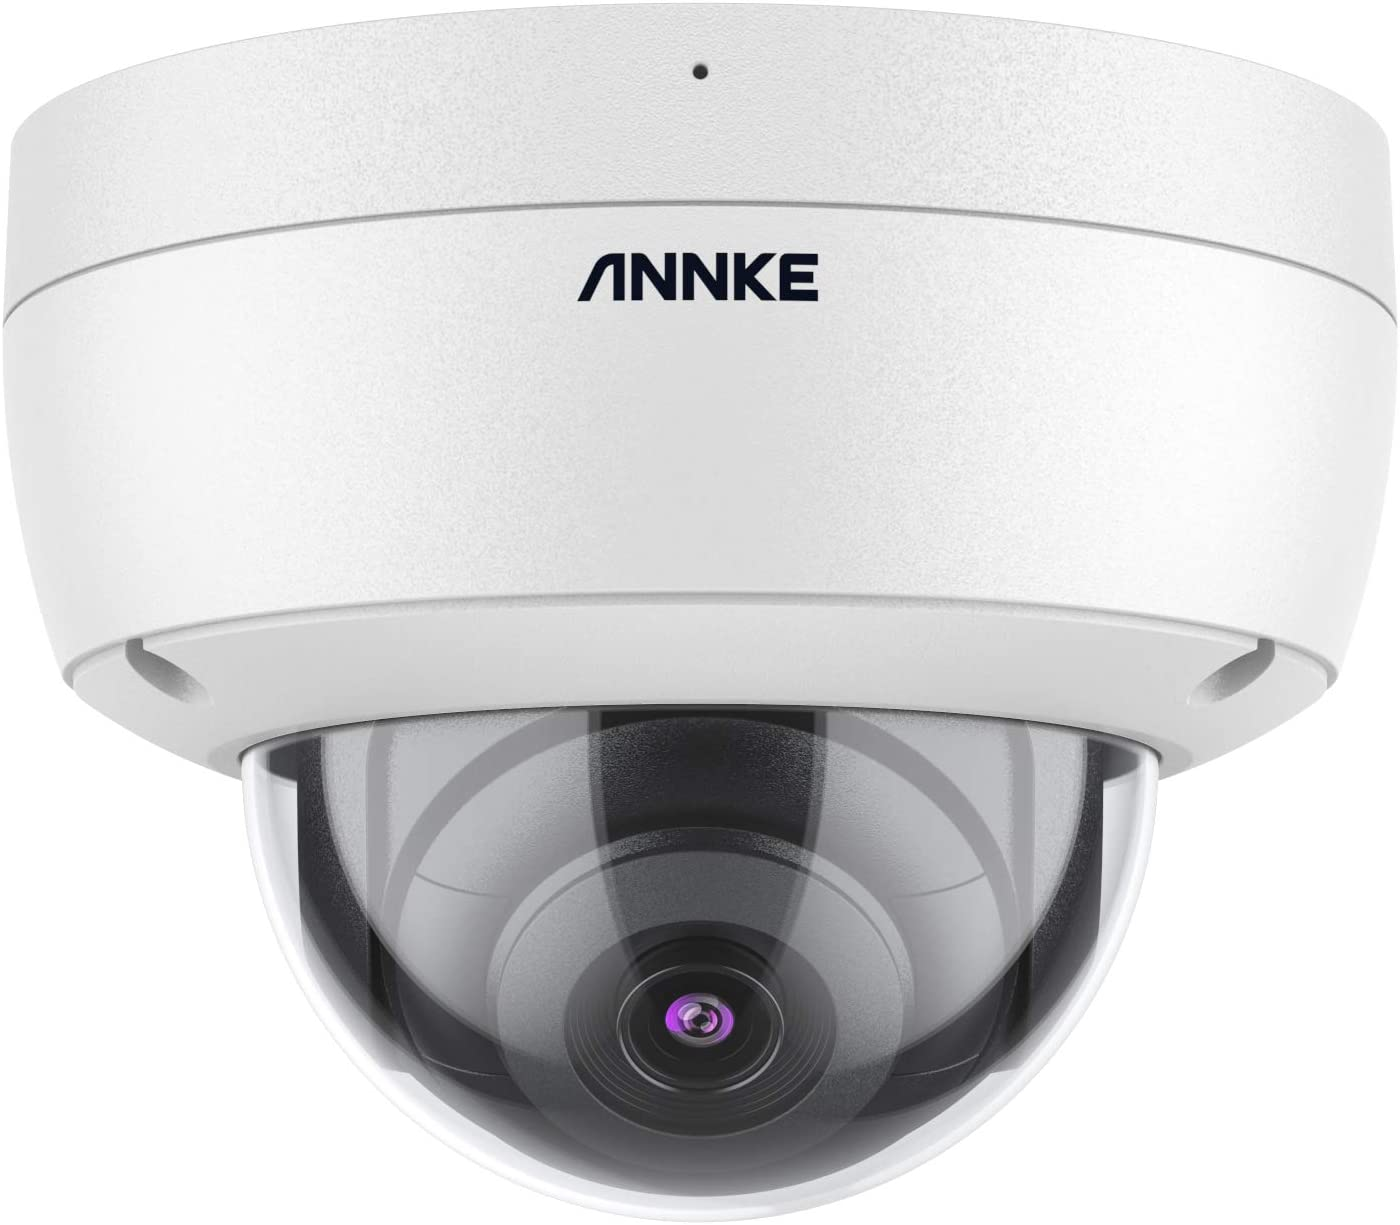 ANNKE C500 5MP PoE Security IP Dome Camera, Super HD H.265+ Night Vision, Remote Access Built-in Mic, Support 256 GB TF Card, IP67 Outdoor Weatherproof & IK10 Vandal-Proof